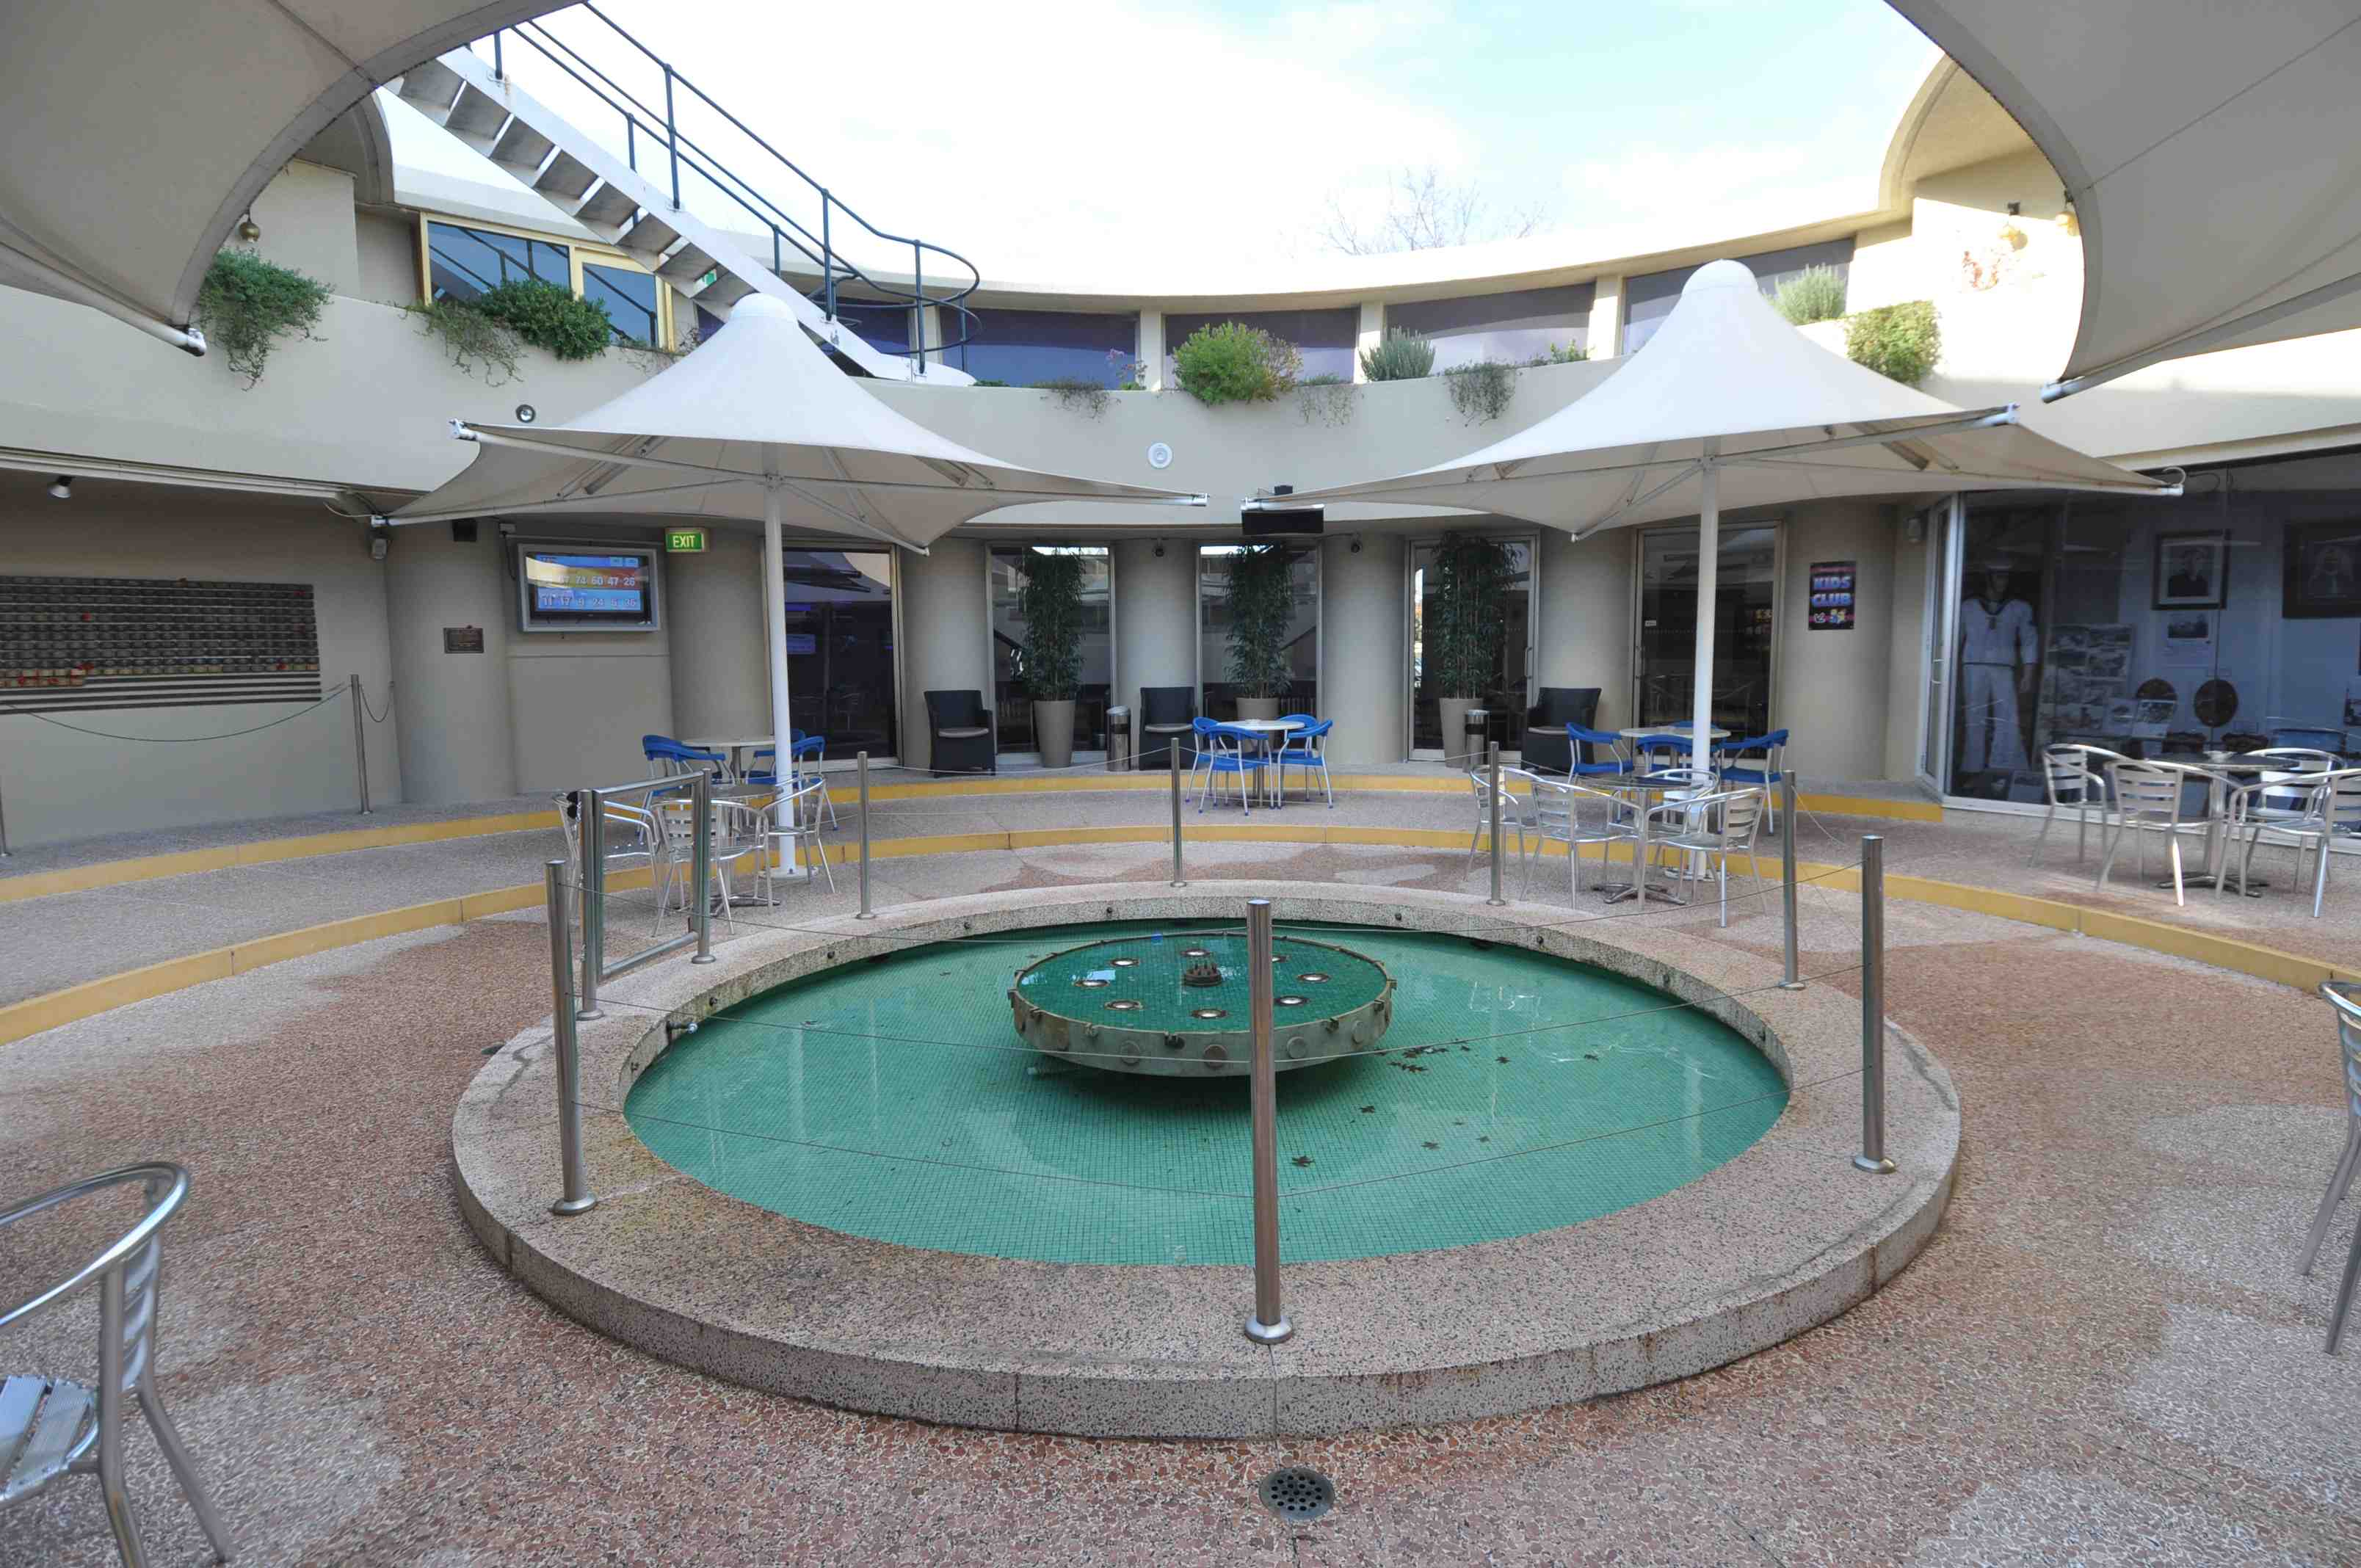 Granville RSL Central Courtyard